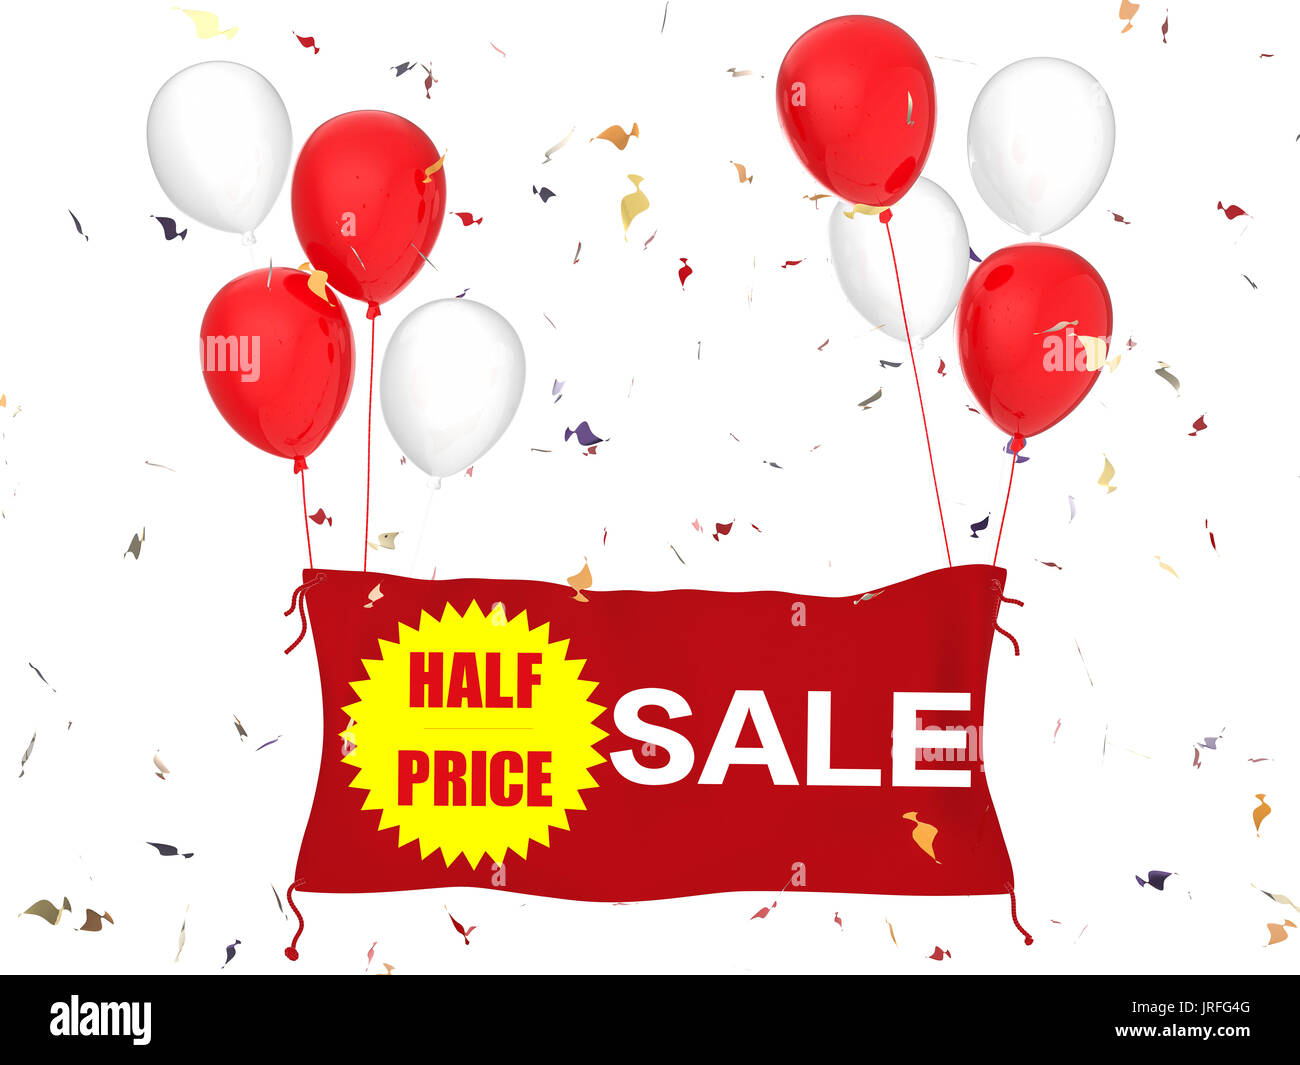 3d rendering half price sale banner on red cloth, red